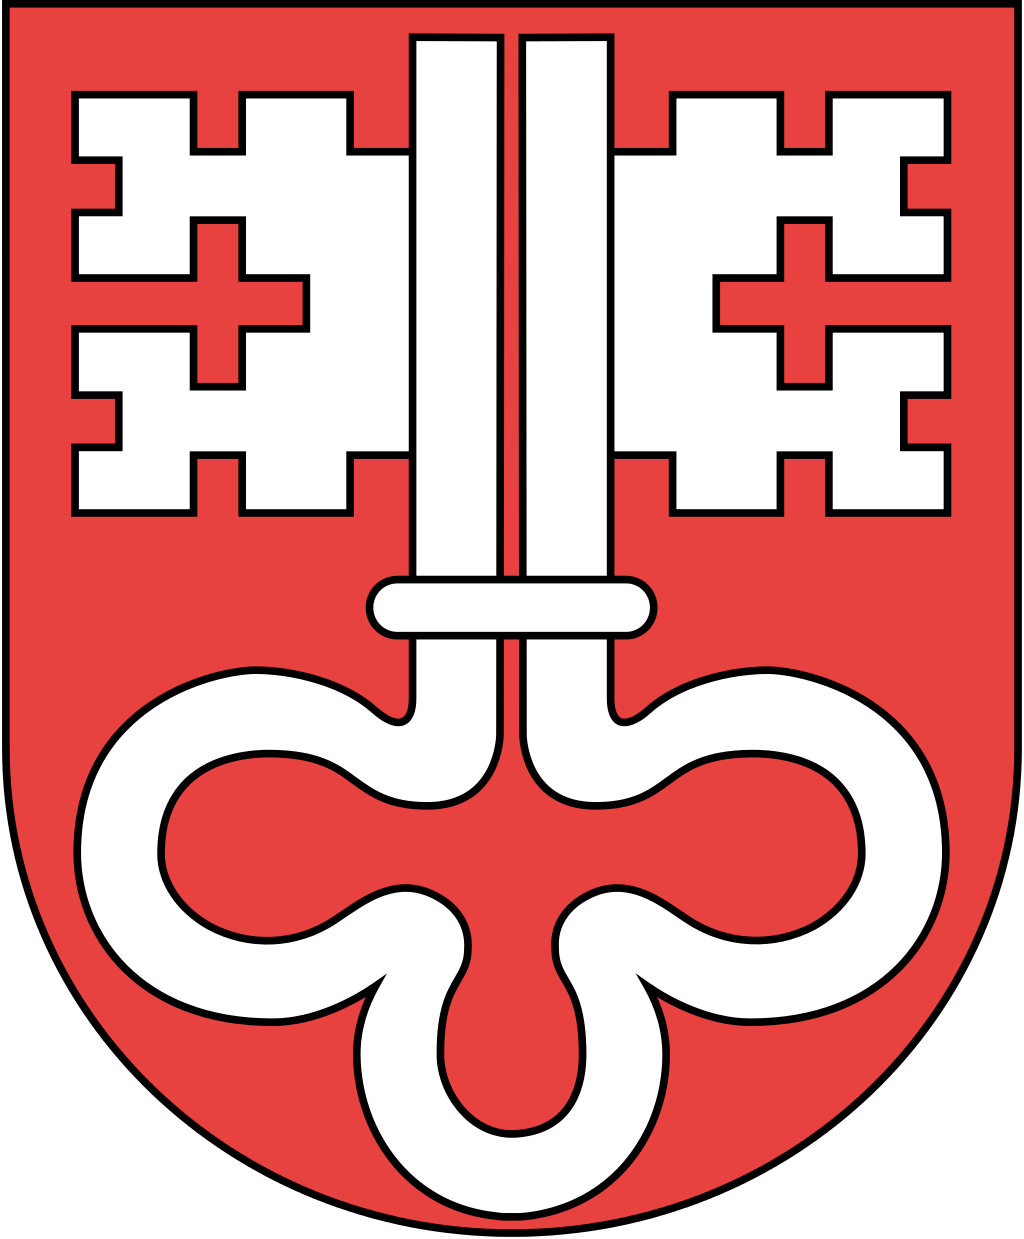 Wappen Nidwalden matt svg